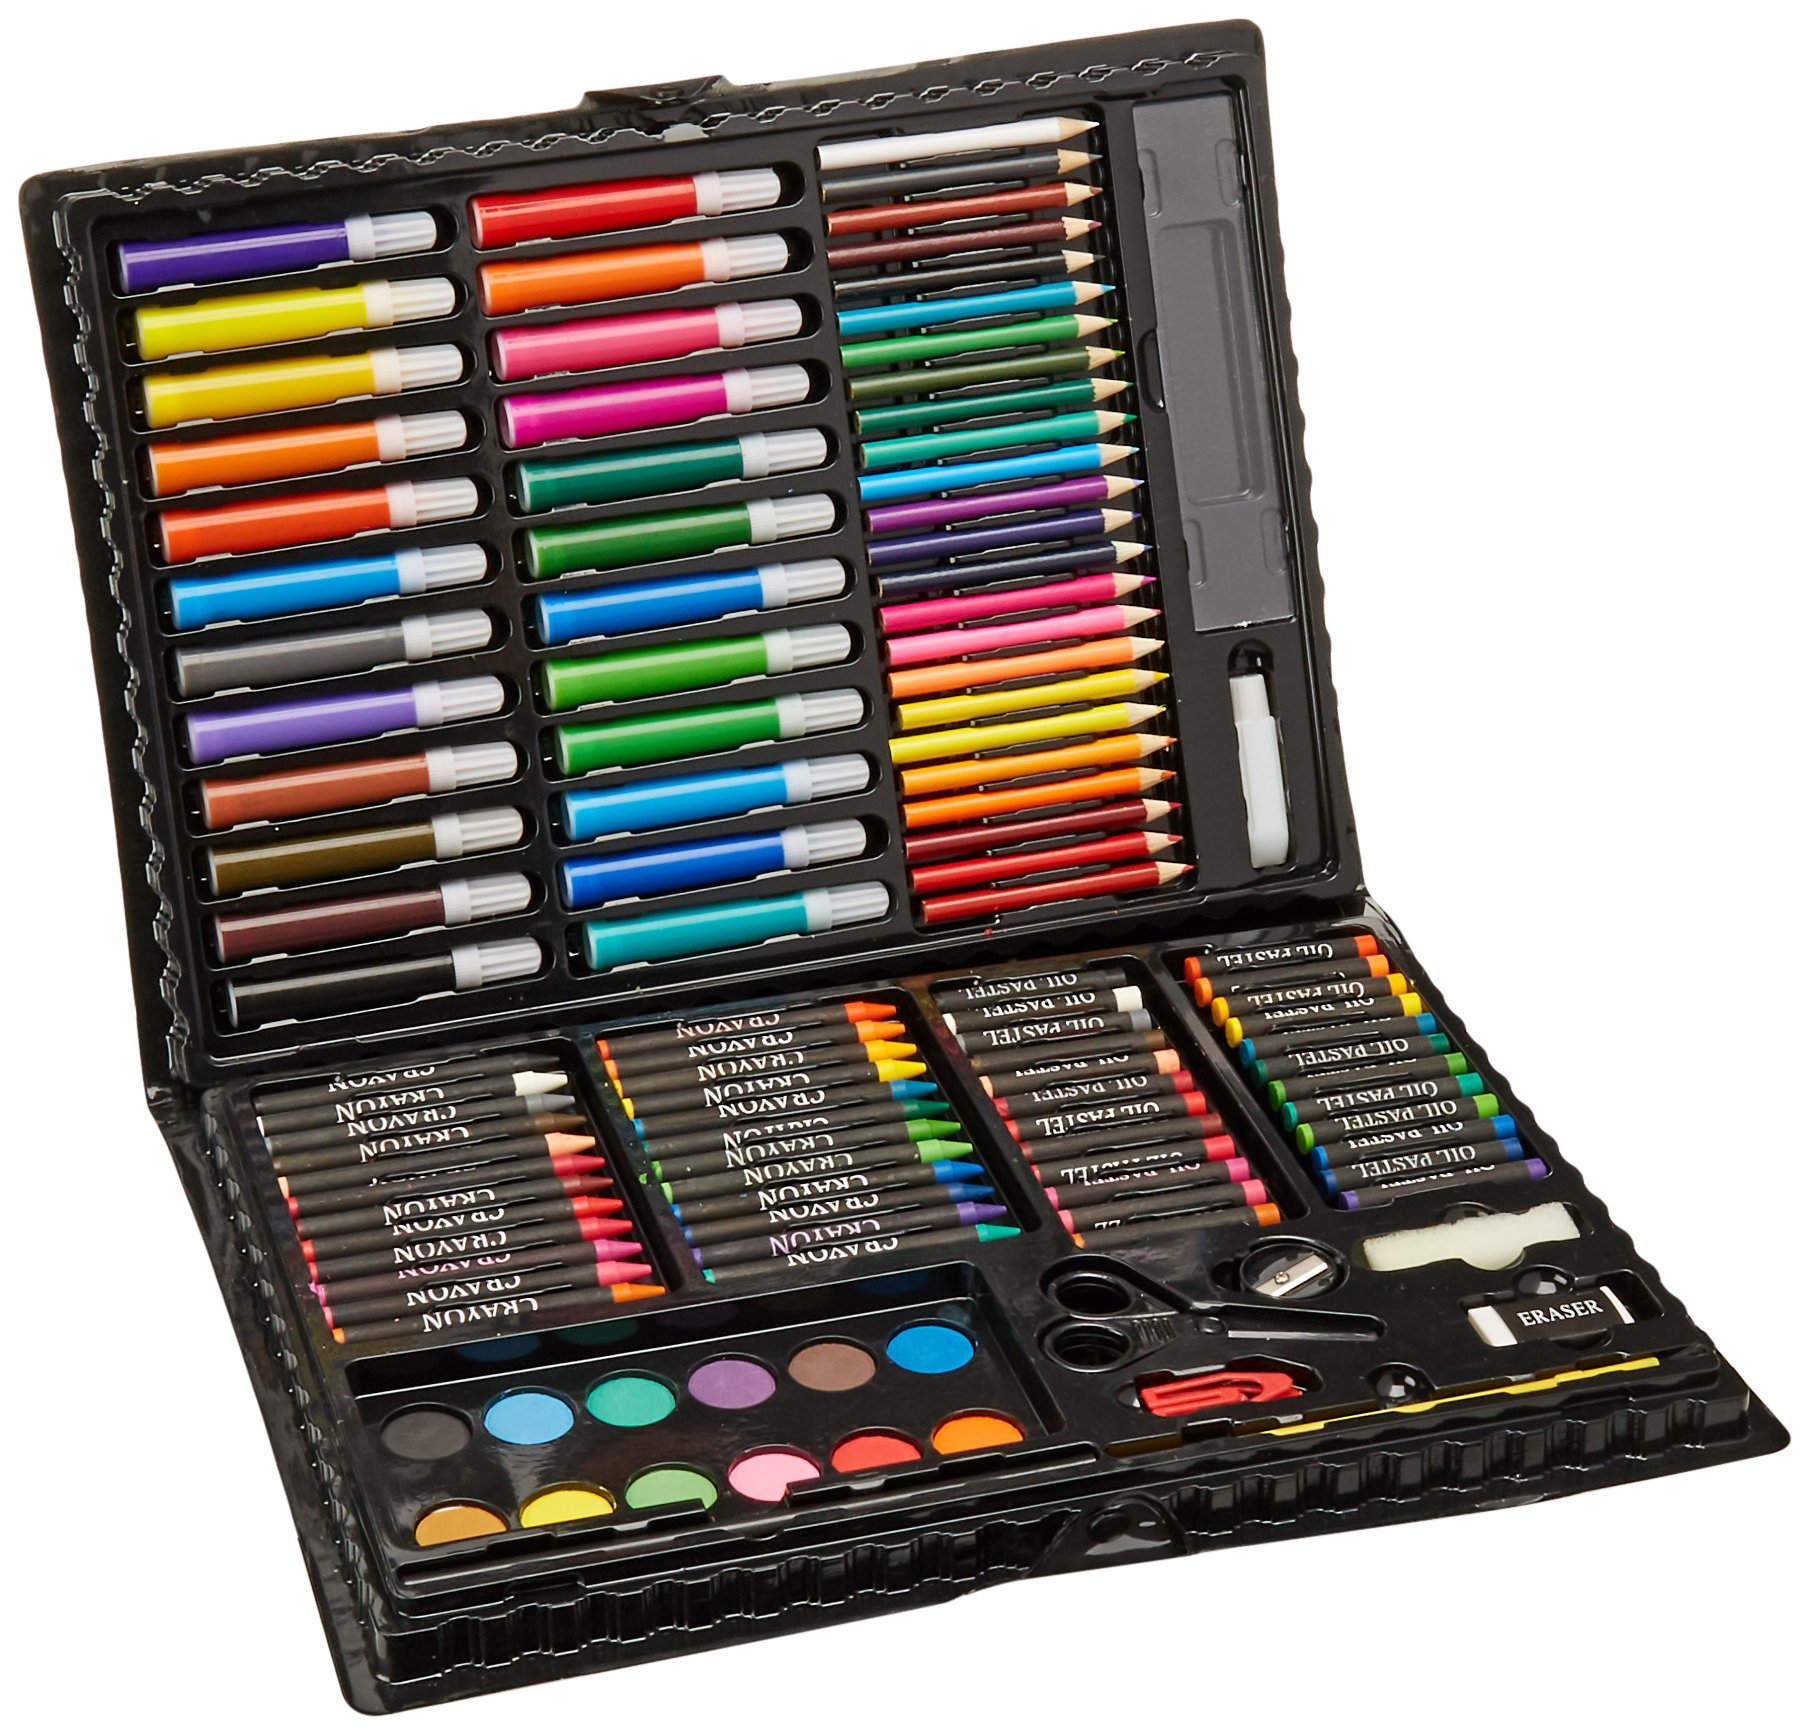 Darice 120-Piece Deluxe Art Set - Art Supplies for Drawing, Painting and More in a Plastic Case - Makes a Great Gift for Children and Adults by Darice